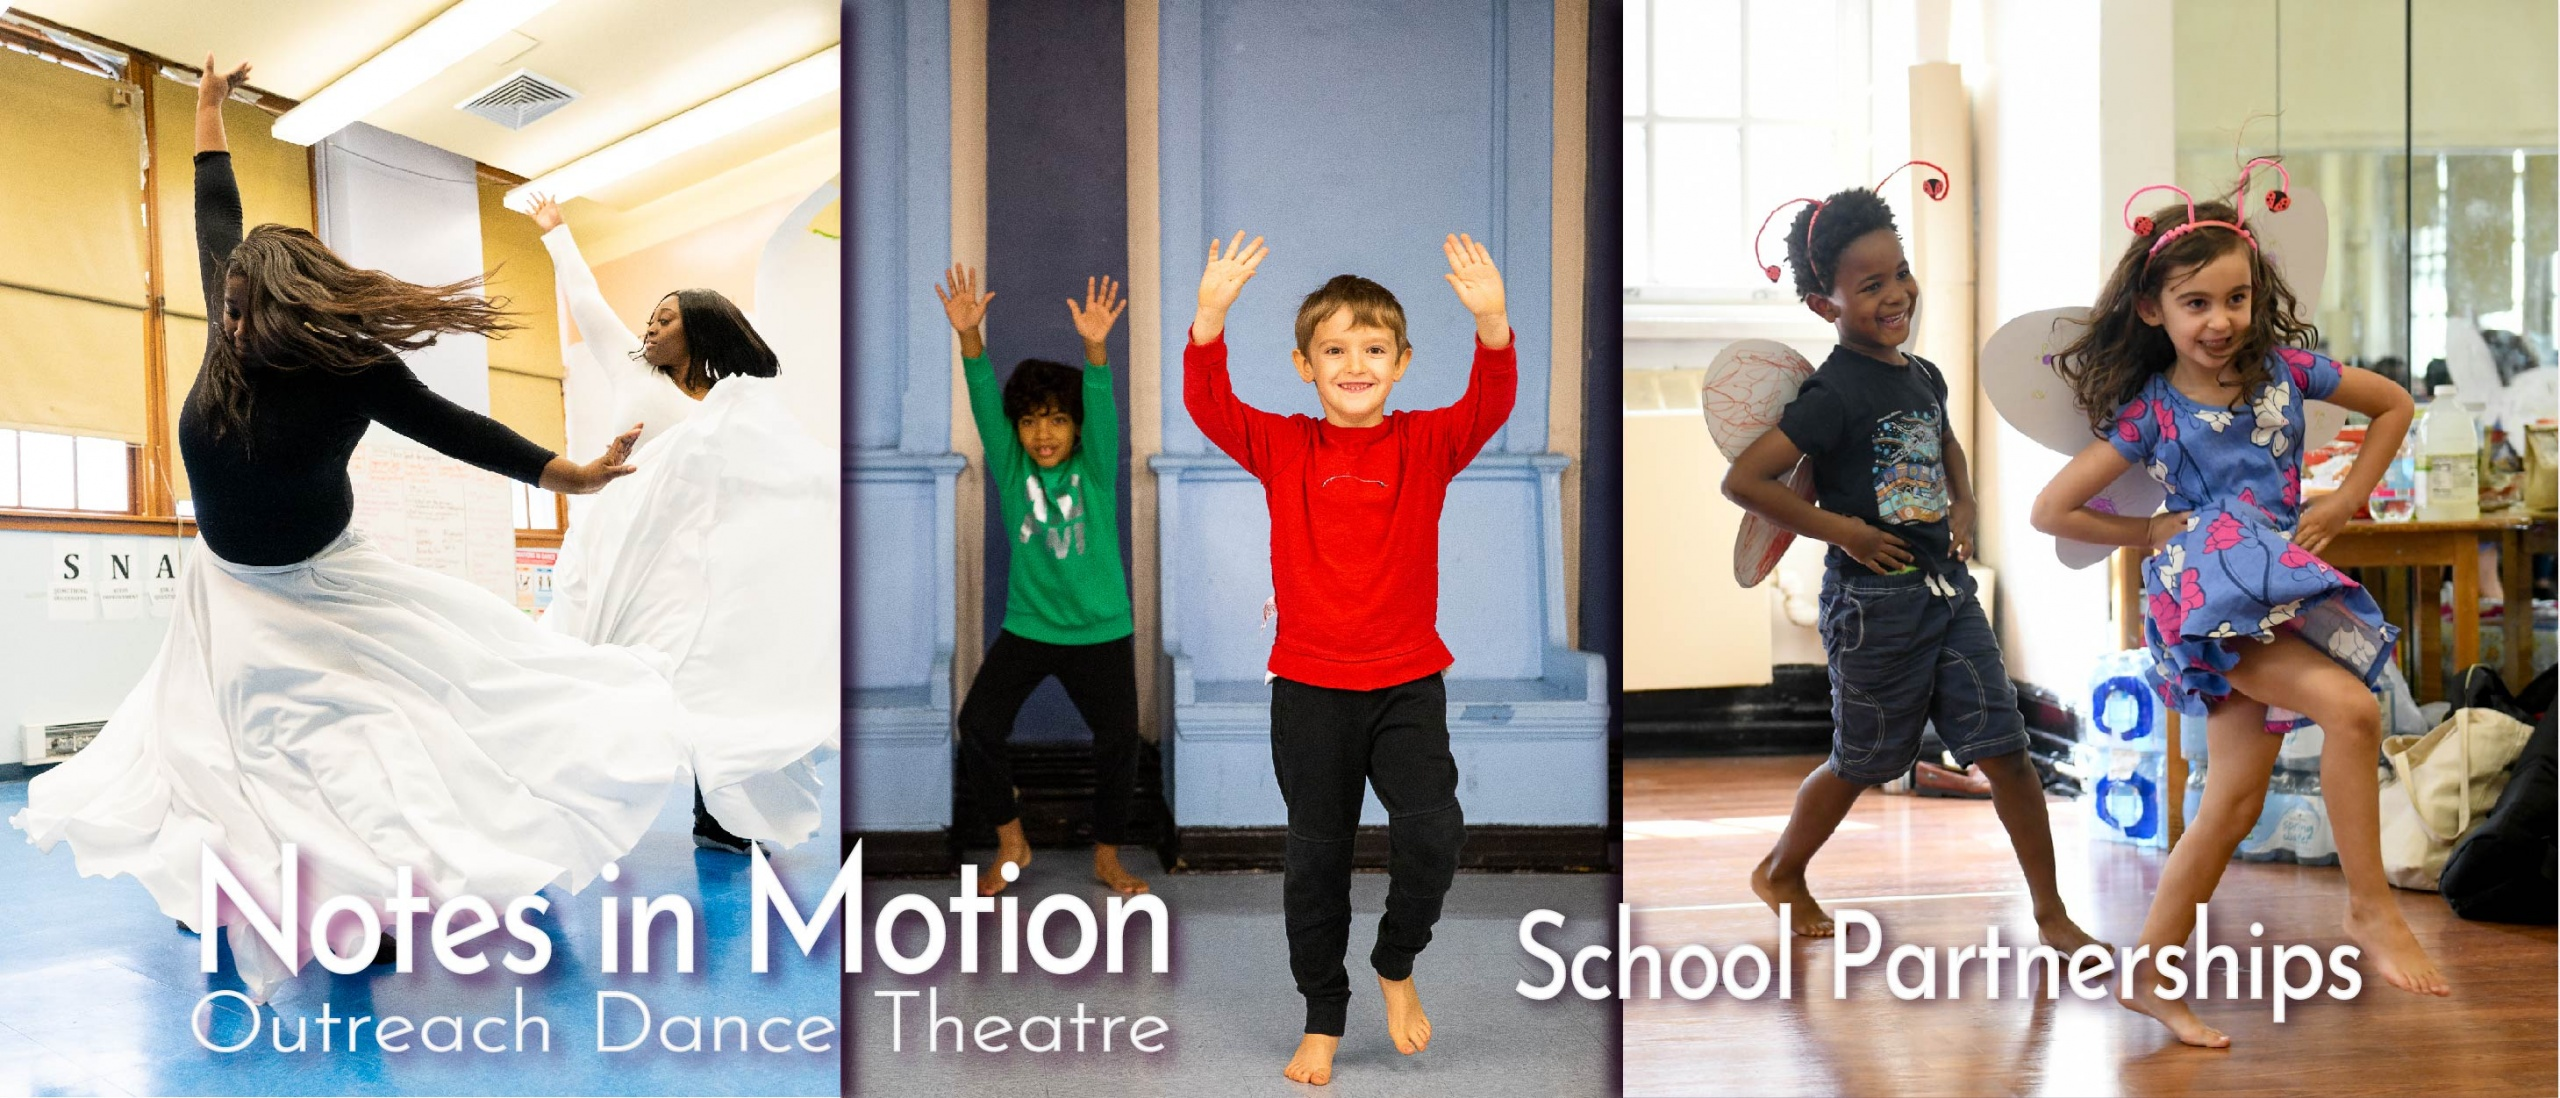 Notes in Motion Outreach Dance Theatre